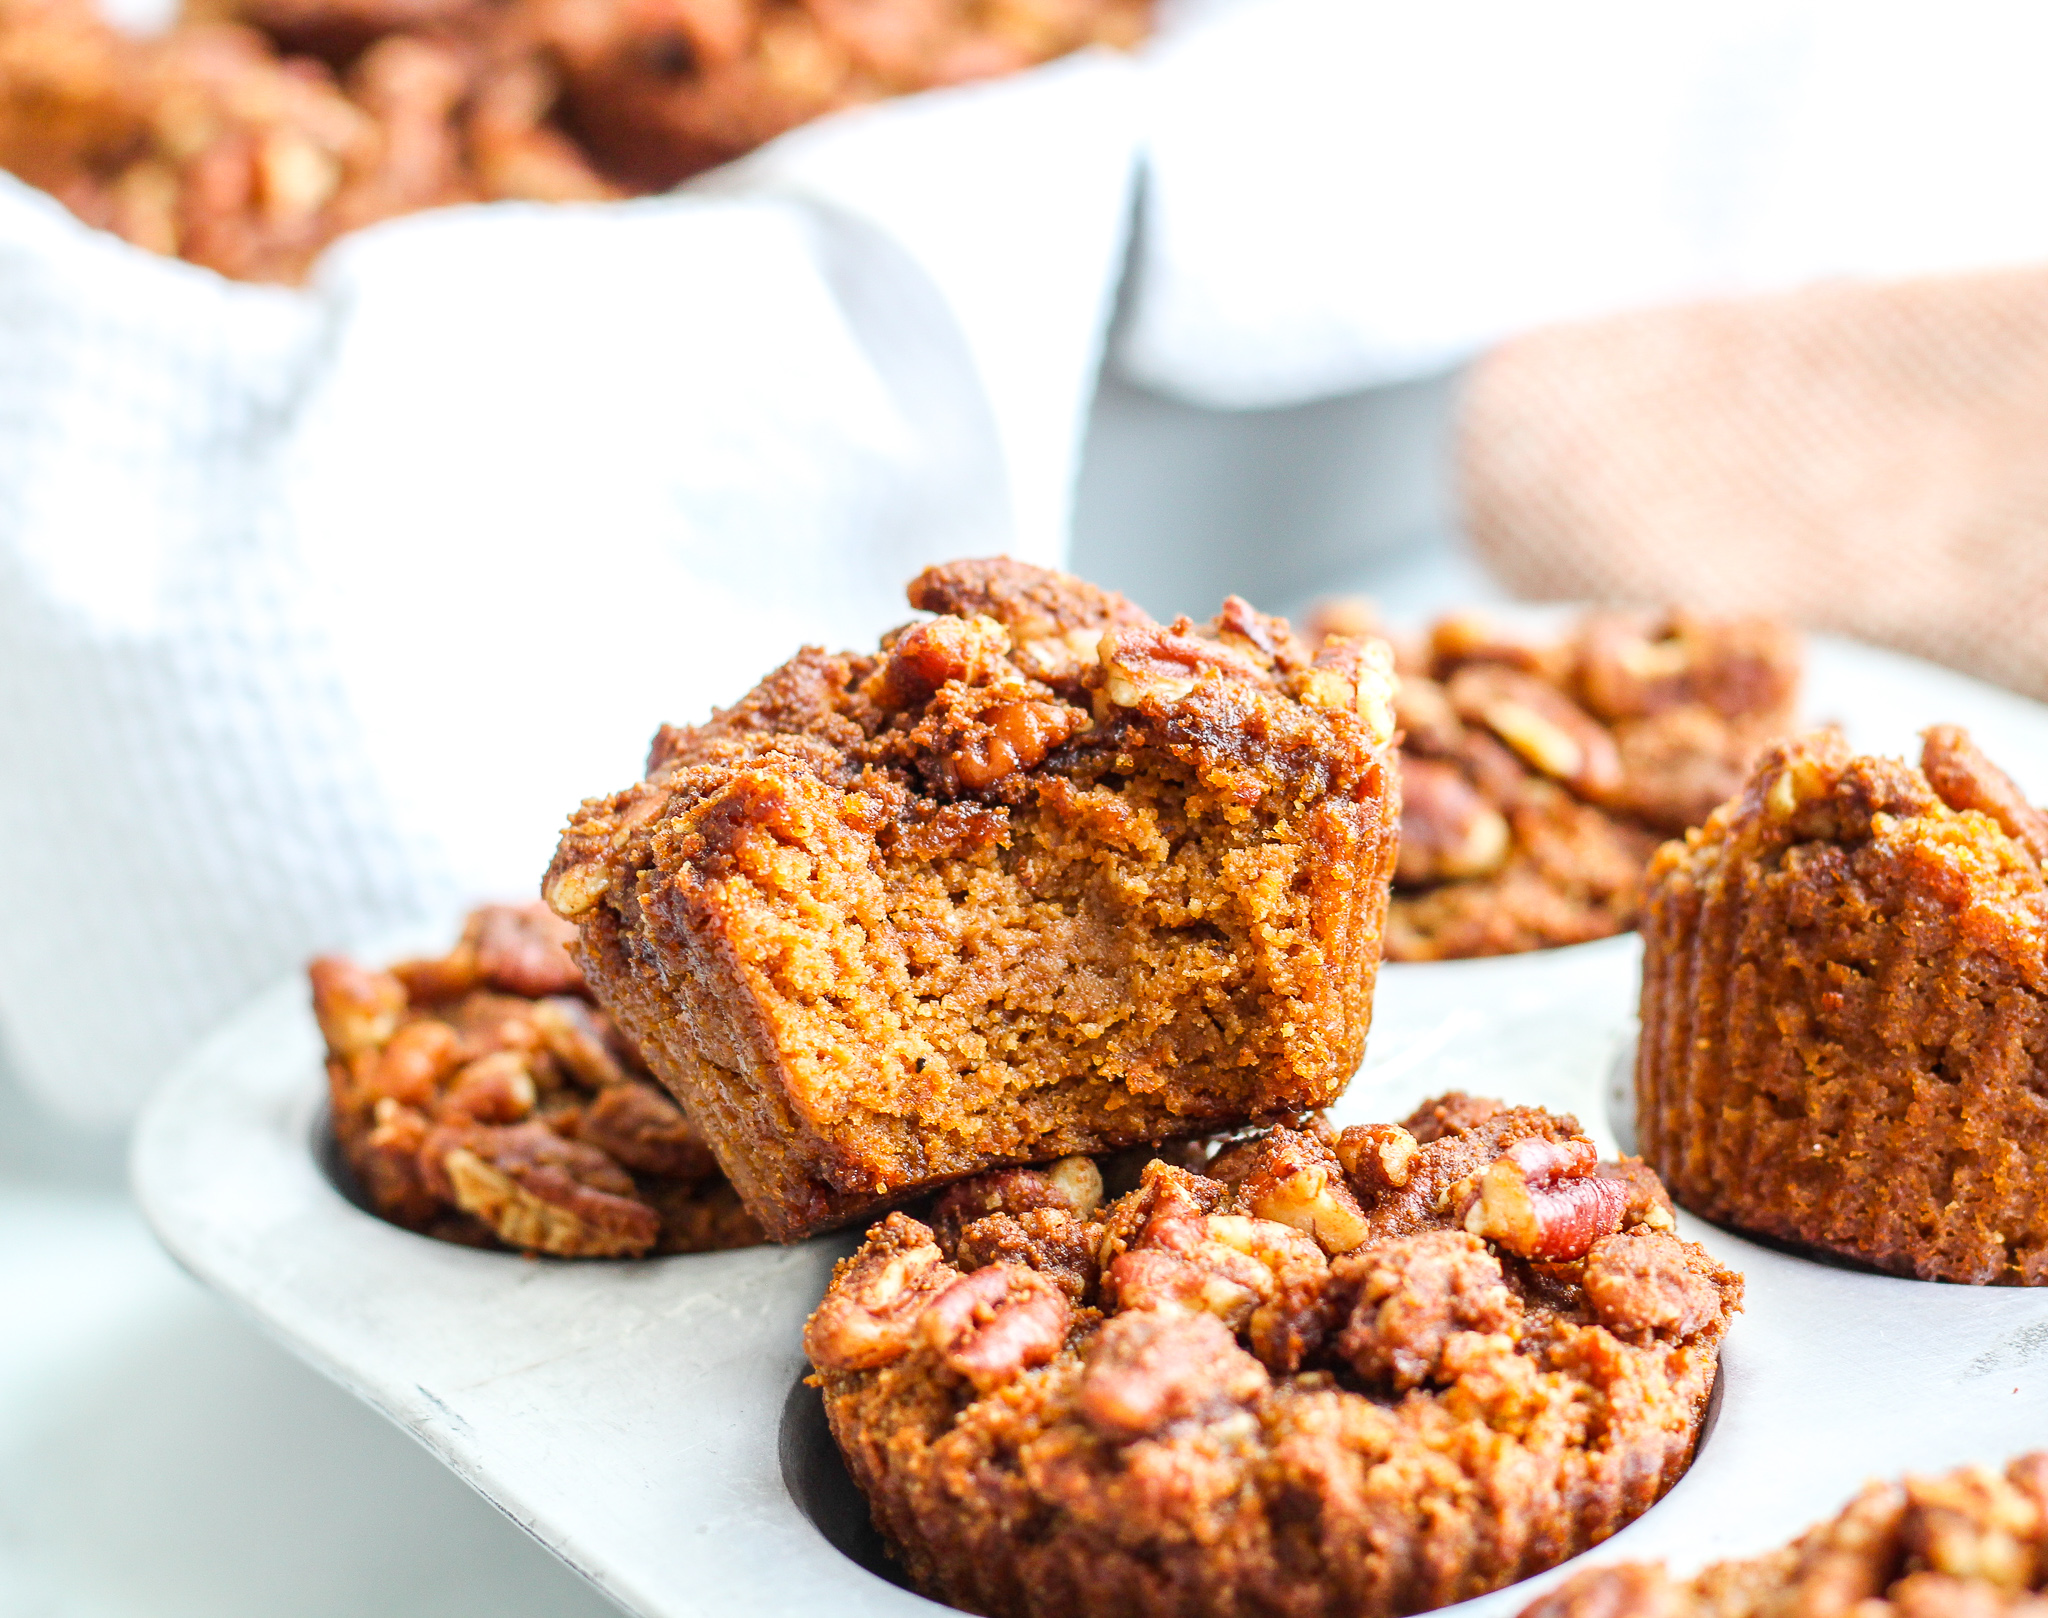 Paleo Pumpkin Streusel Muffin with a bite taken out of it sitting on top of a silver muffin tin